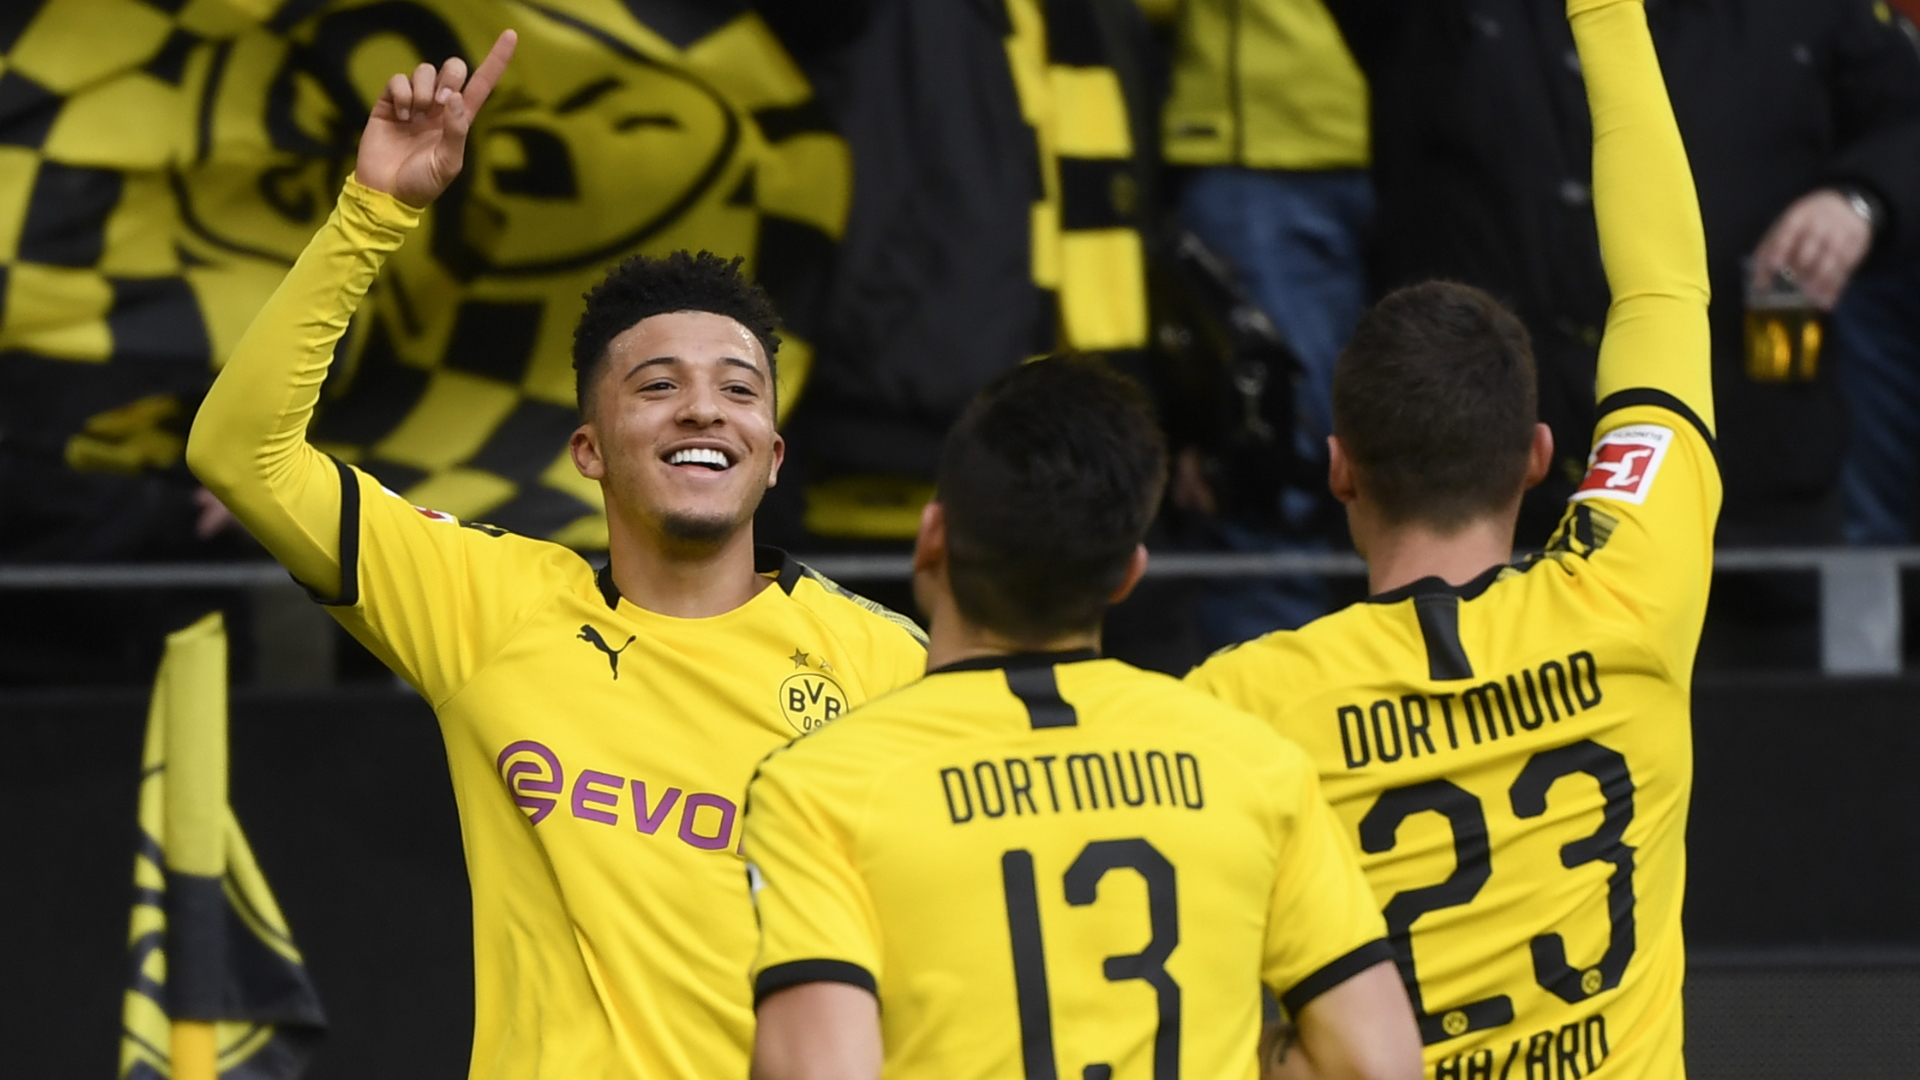 'I'd choose Sancho over Mbappe and Haaland for Liverpool' – Heskey